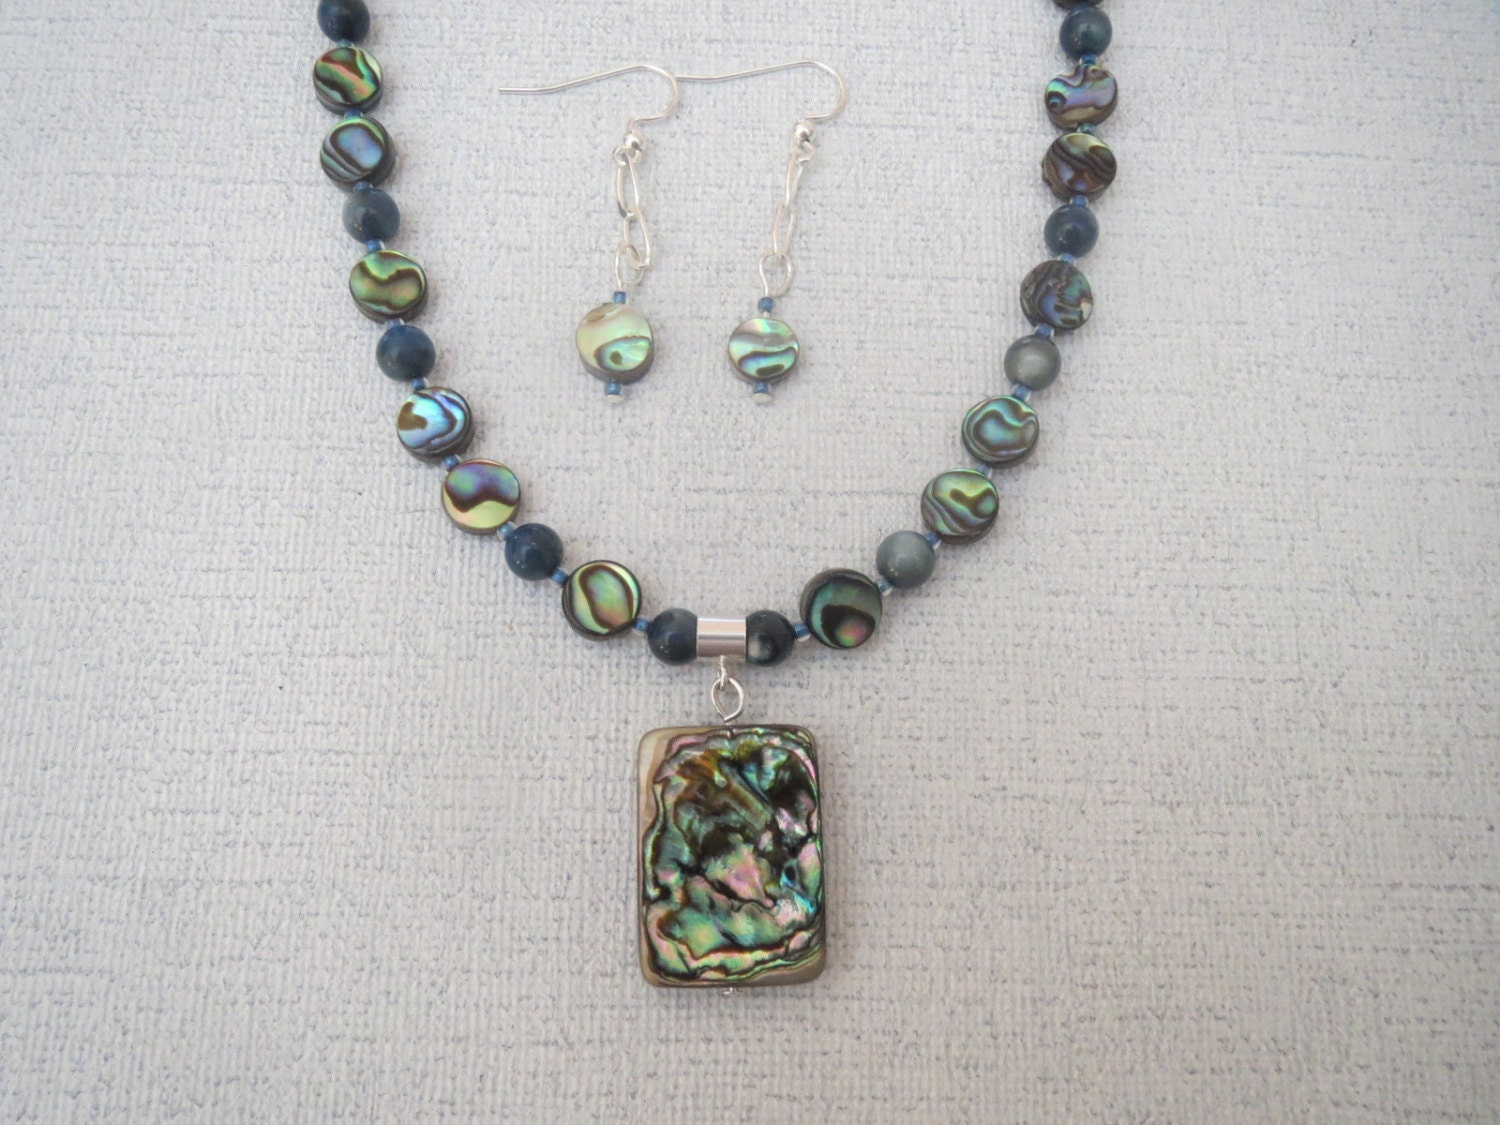 abalone shell necklace with pendant and earrings sterling